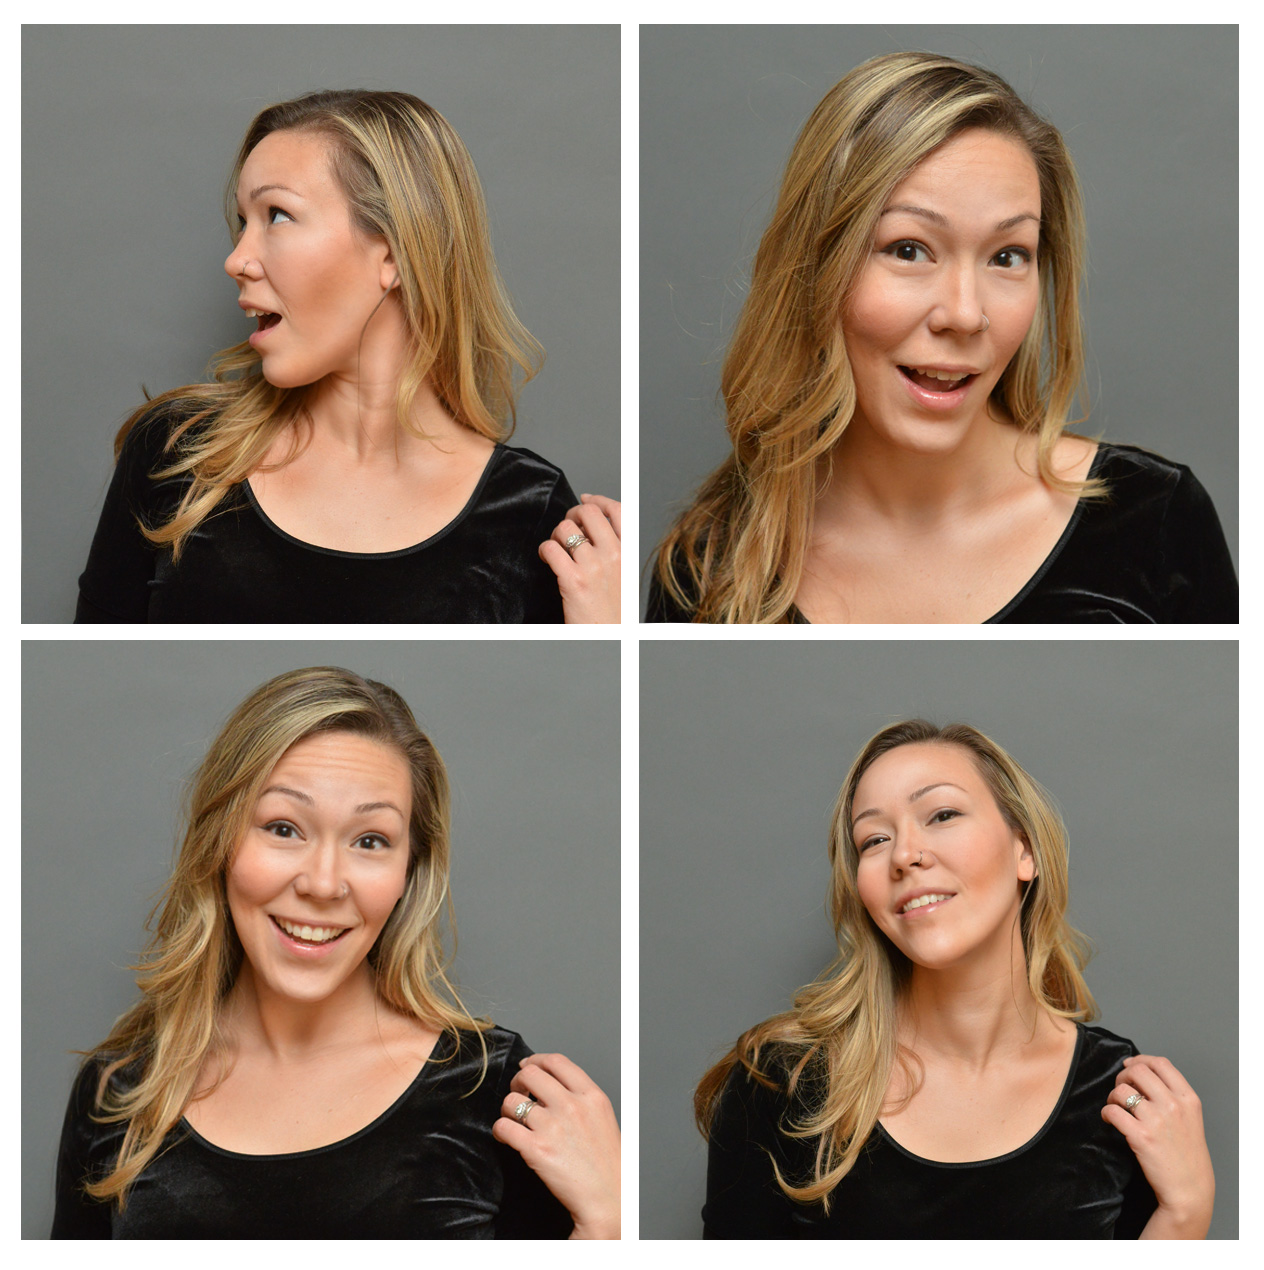 Passport photo outtakes - only because they were too risque for the Federal Government